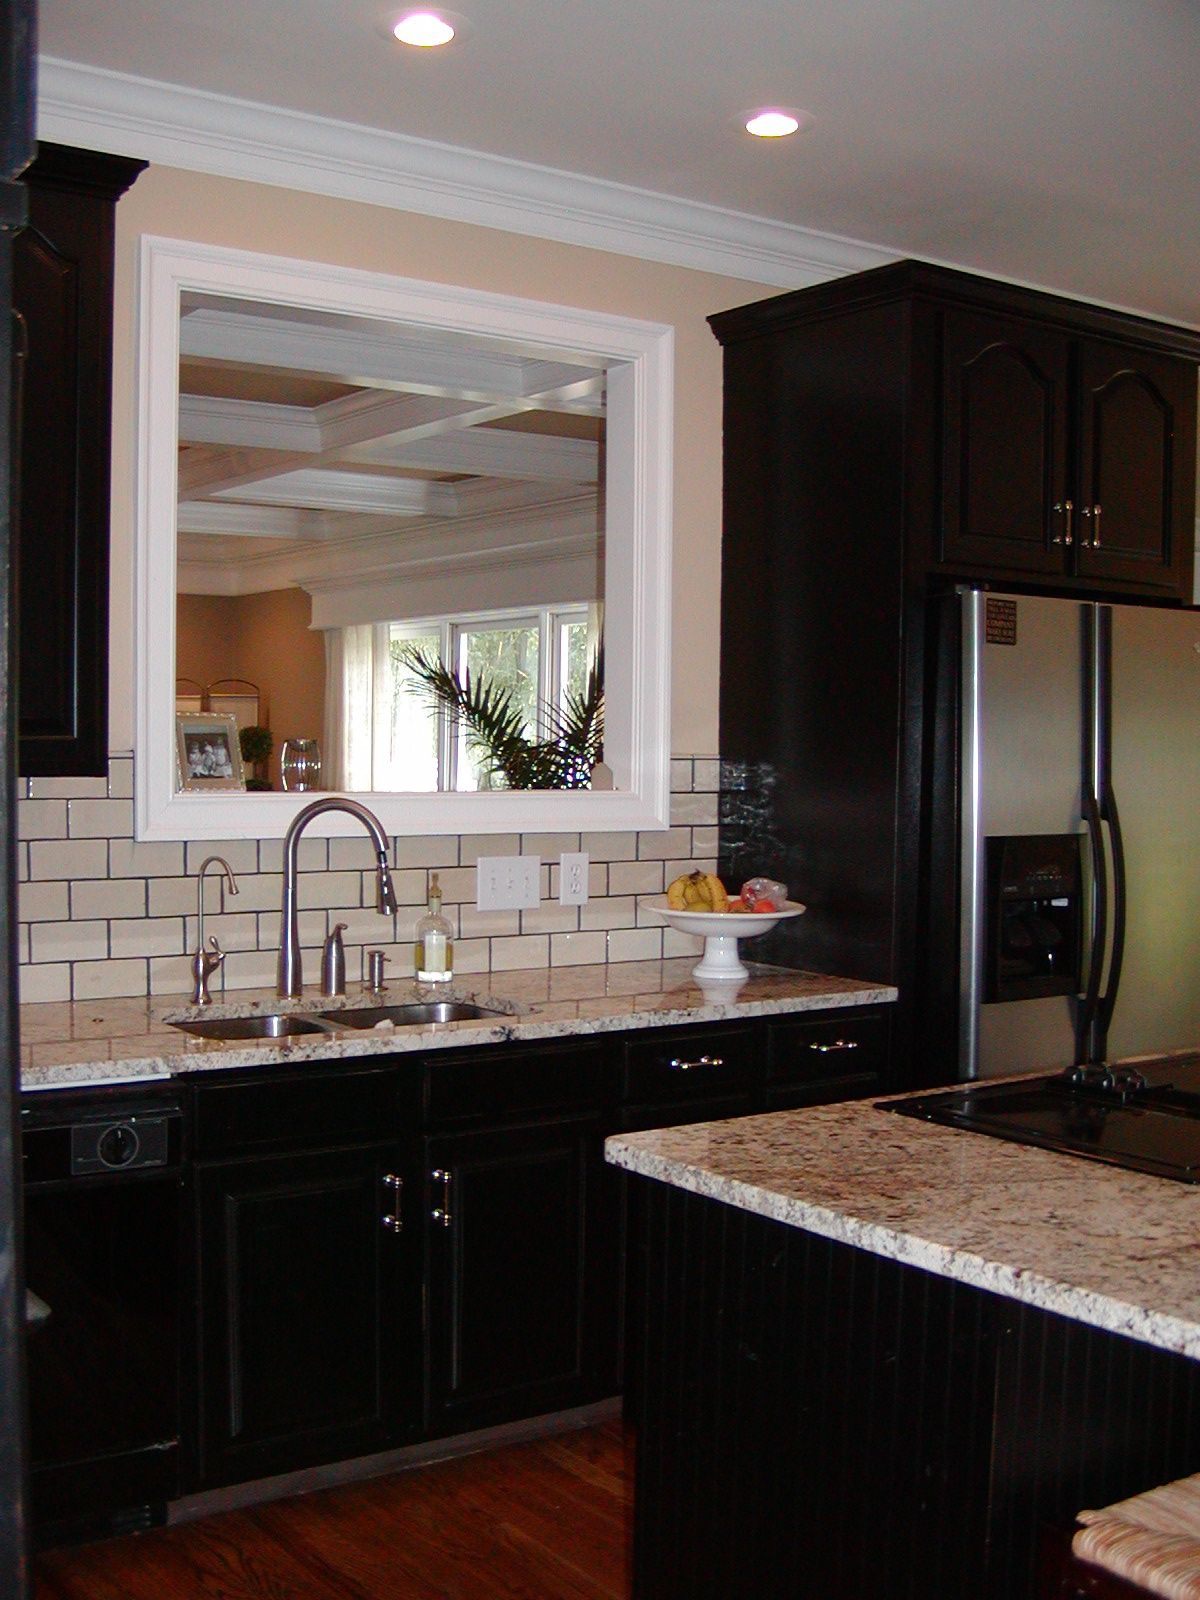 Kitchen Ideas Espresso Cabinets very close to what we are doing: espresso cabinets, light grey